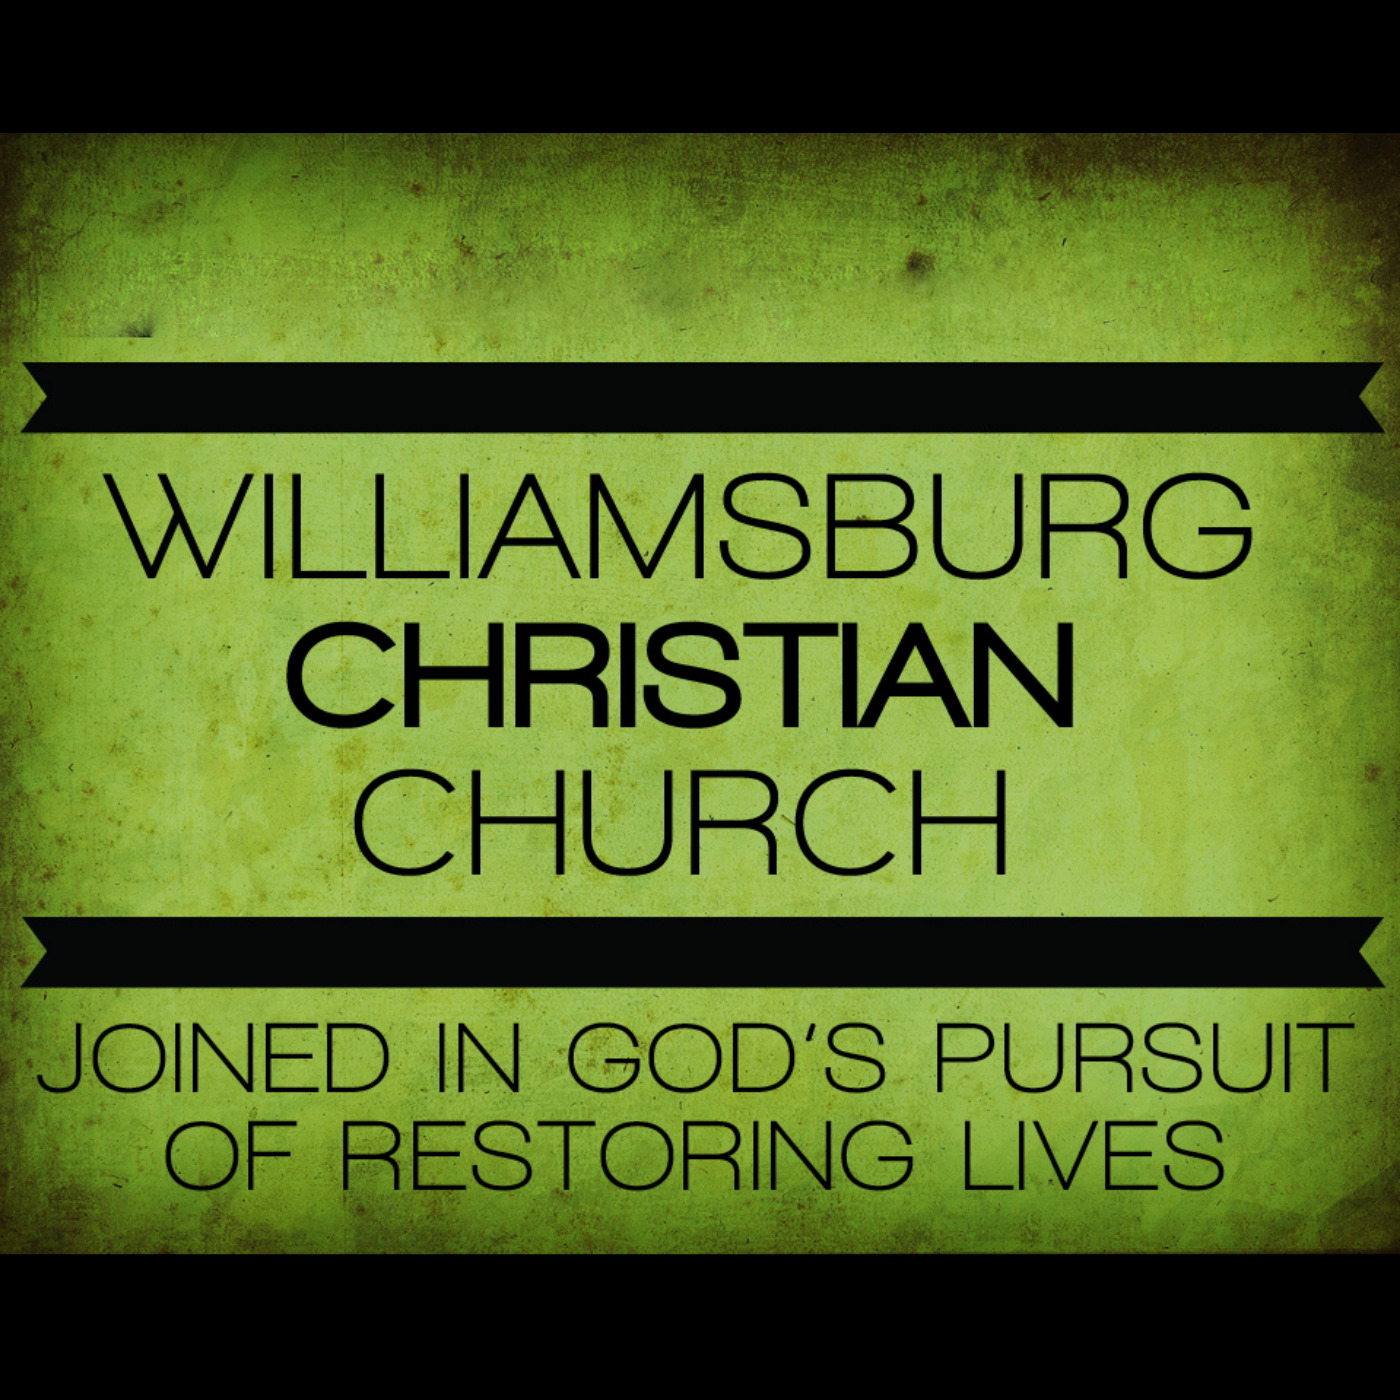 Williamsburg Christian Church